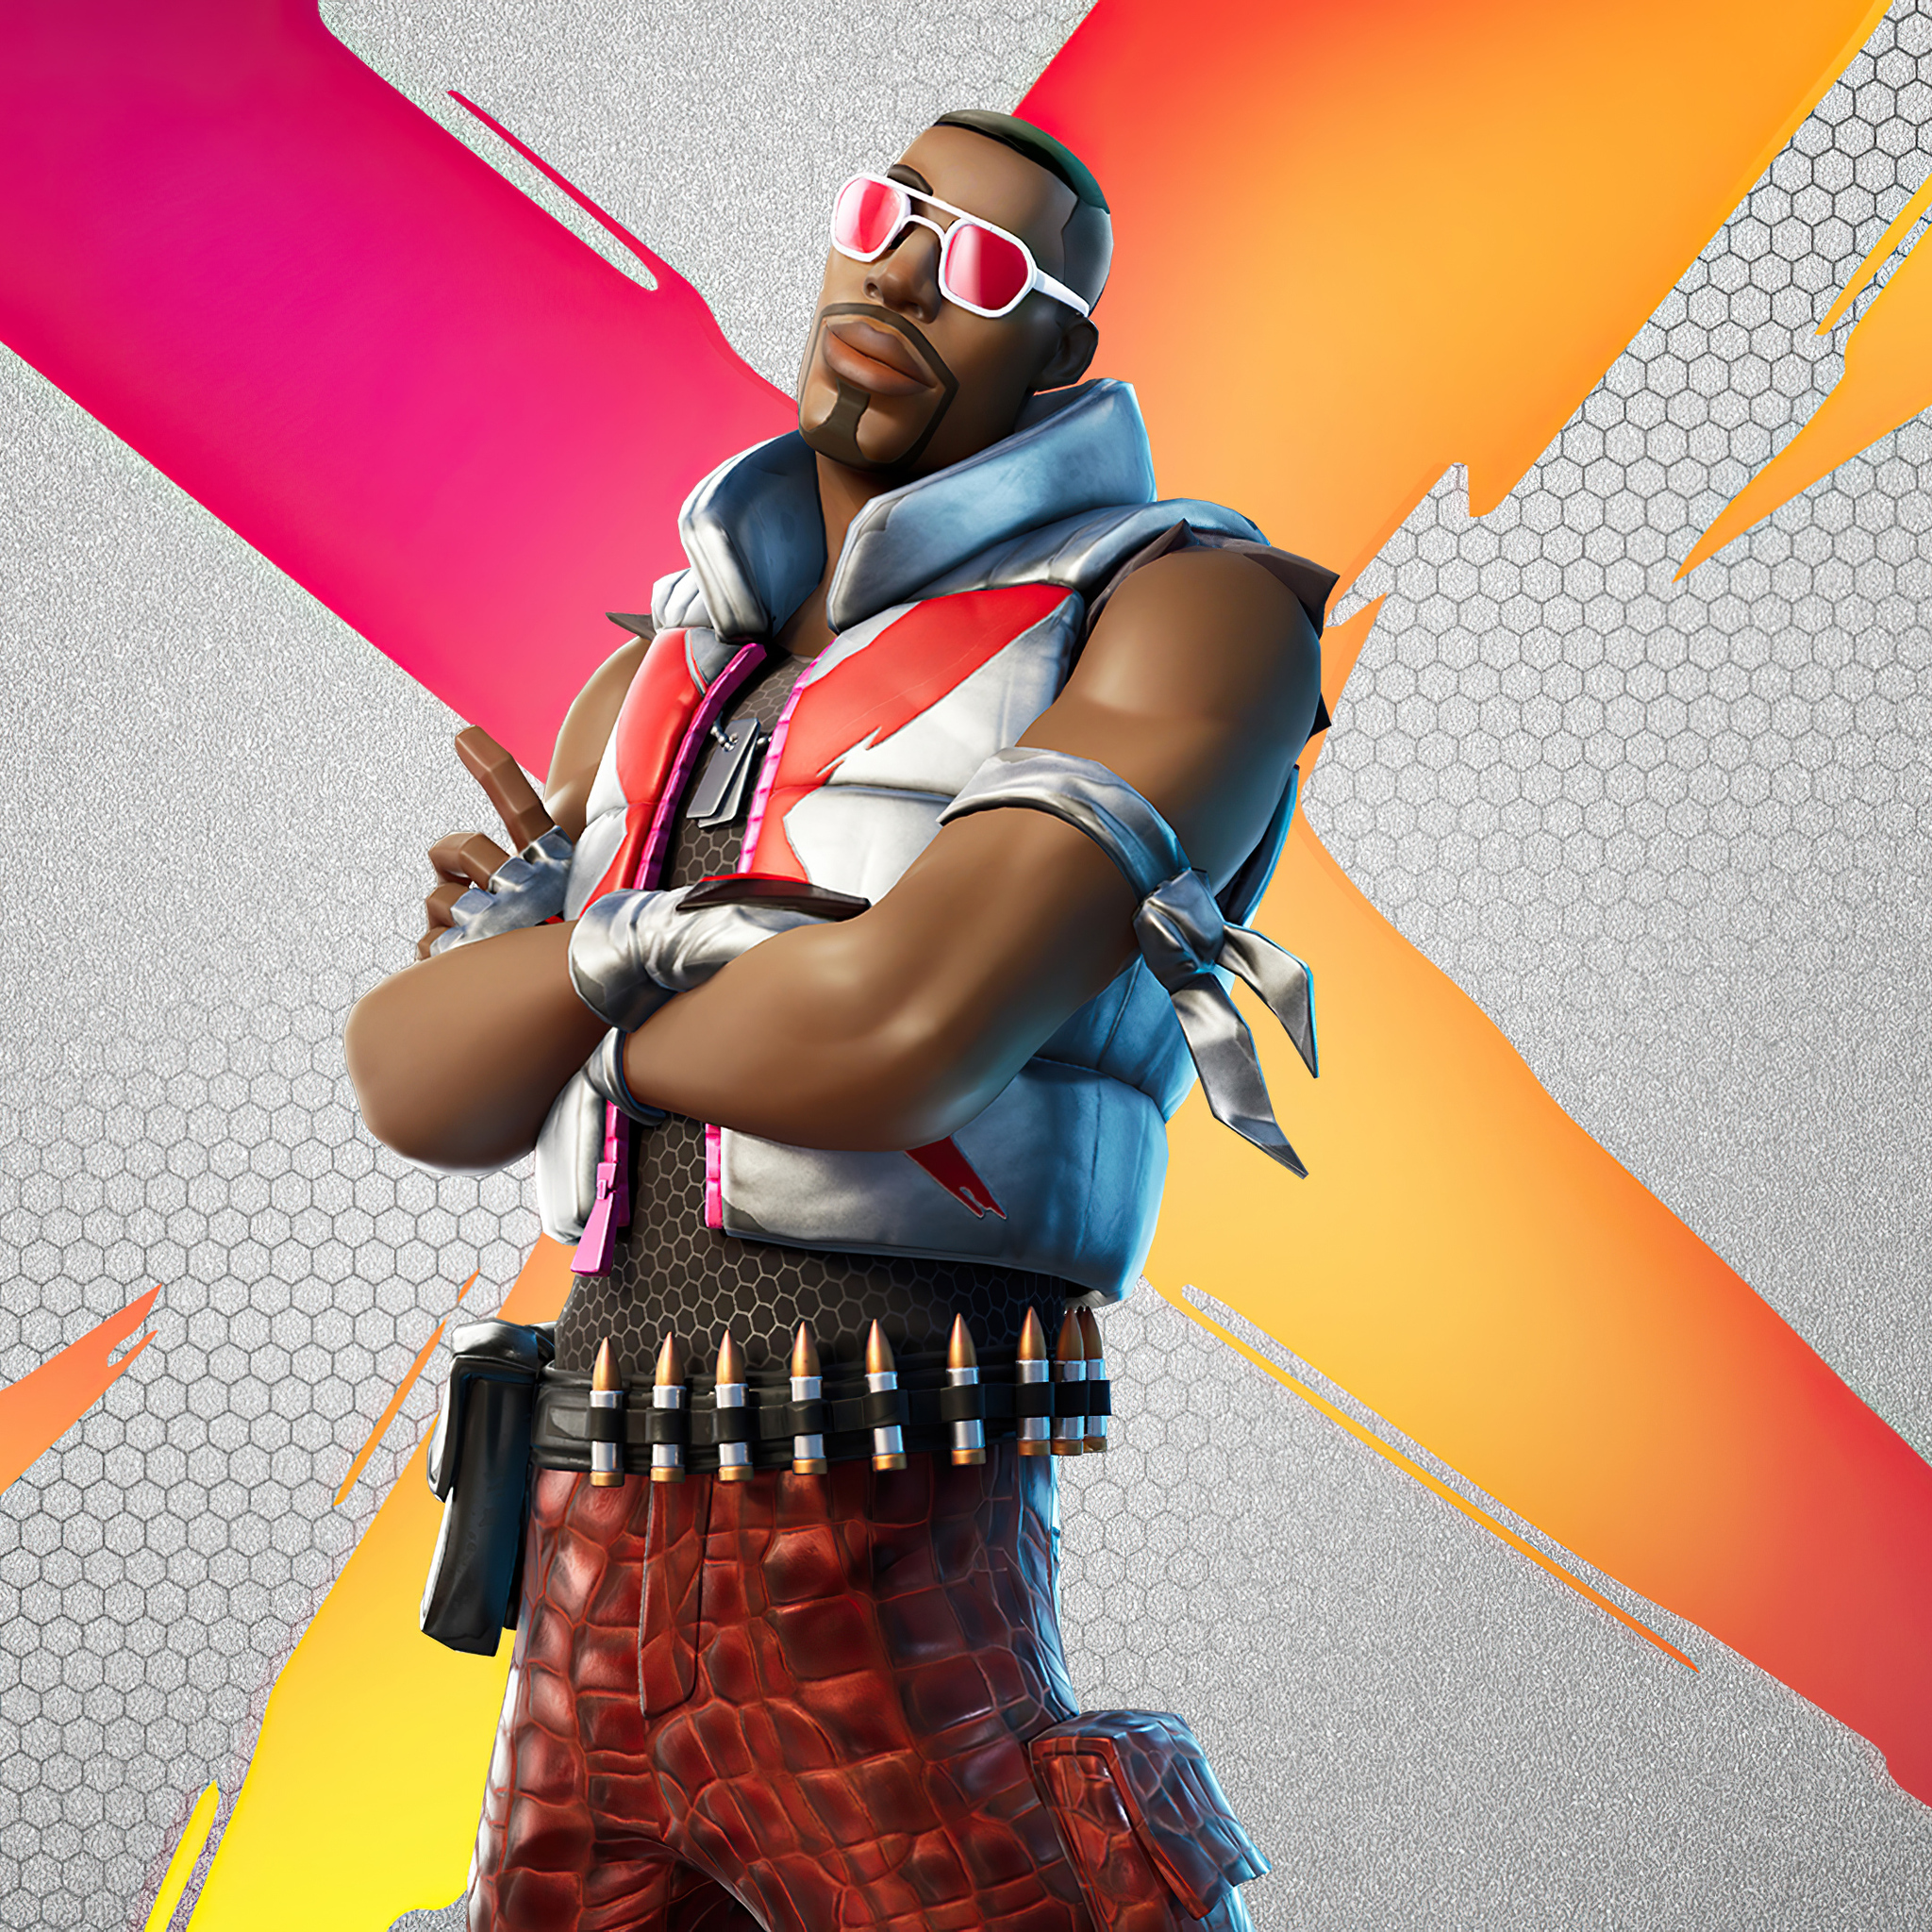 2048x2048 Fortnite Wild Gunner Outfit 4k Ipad Air HD 4k